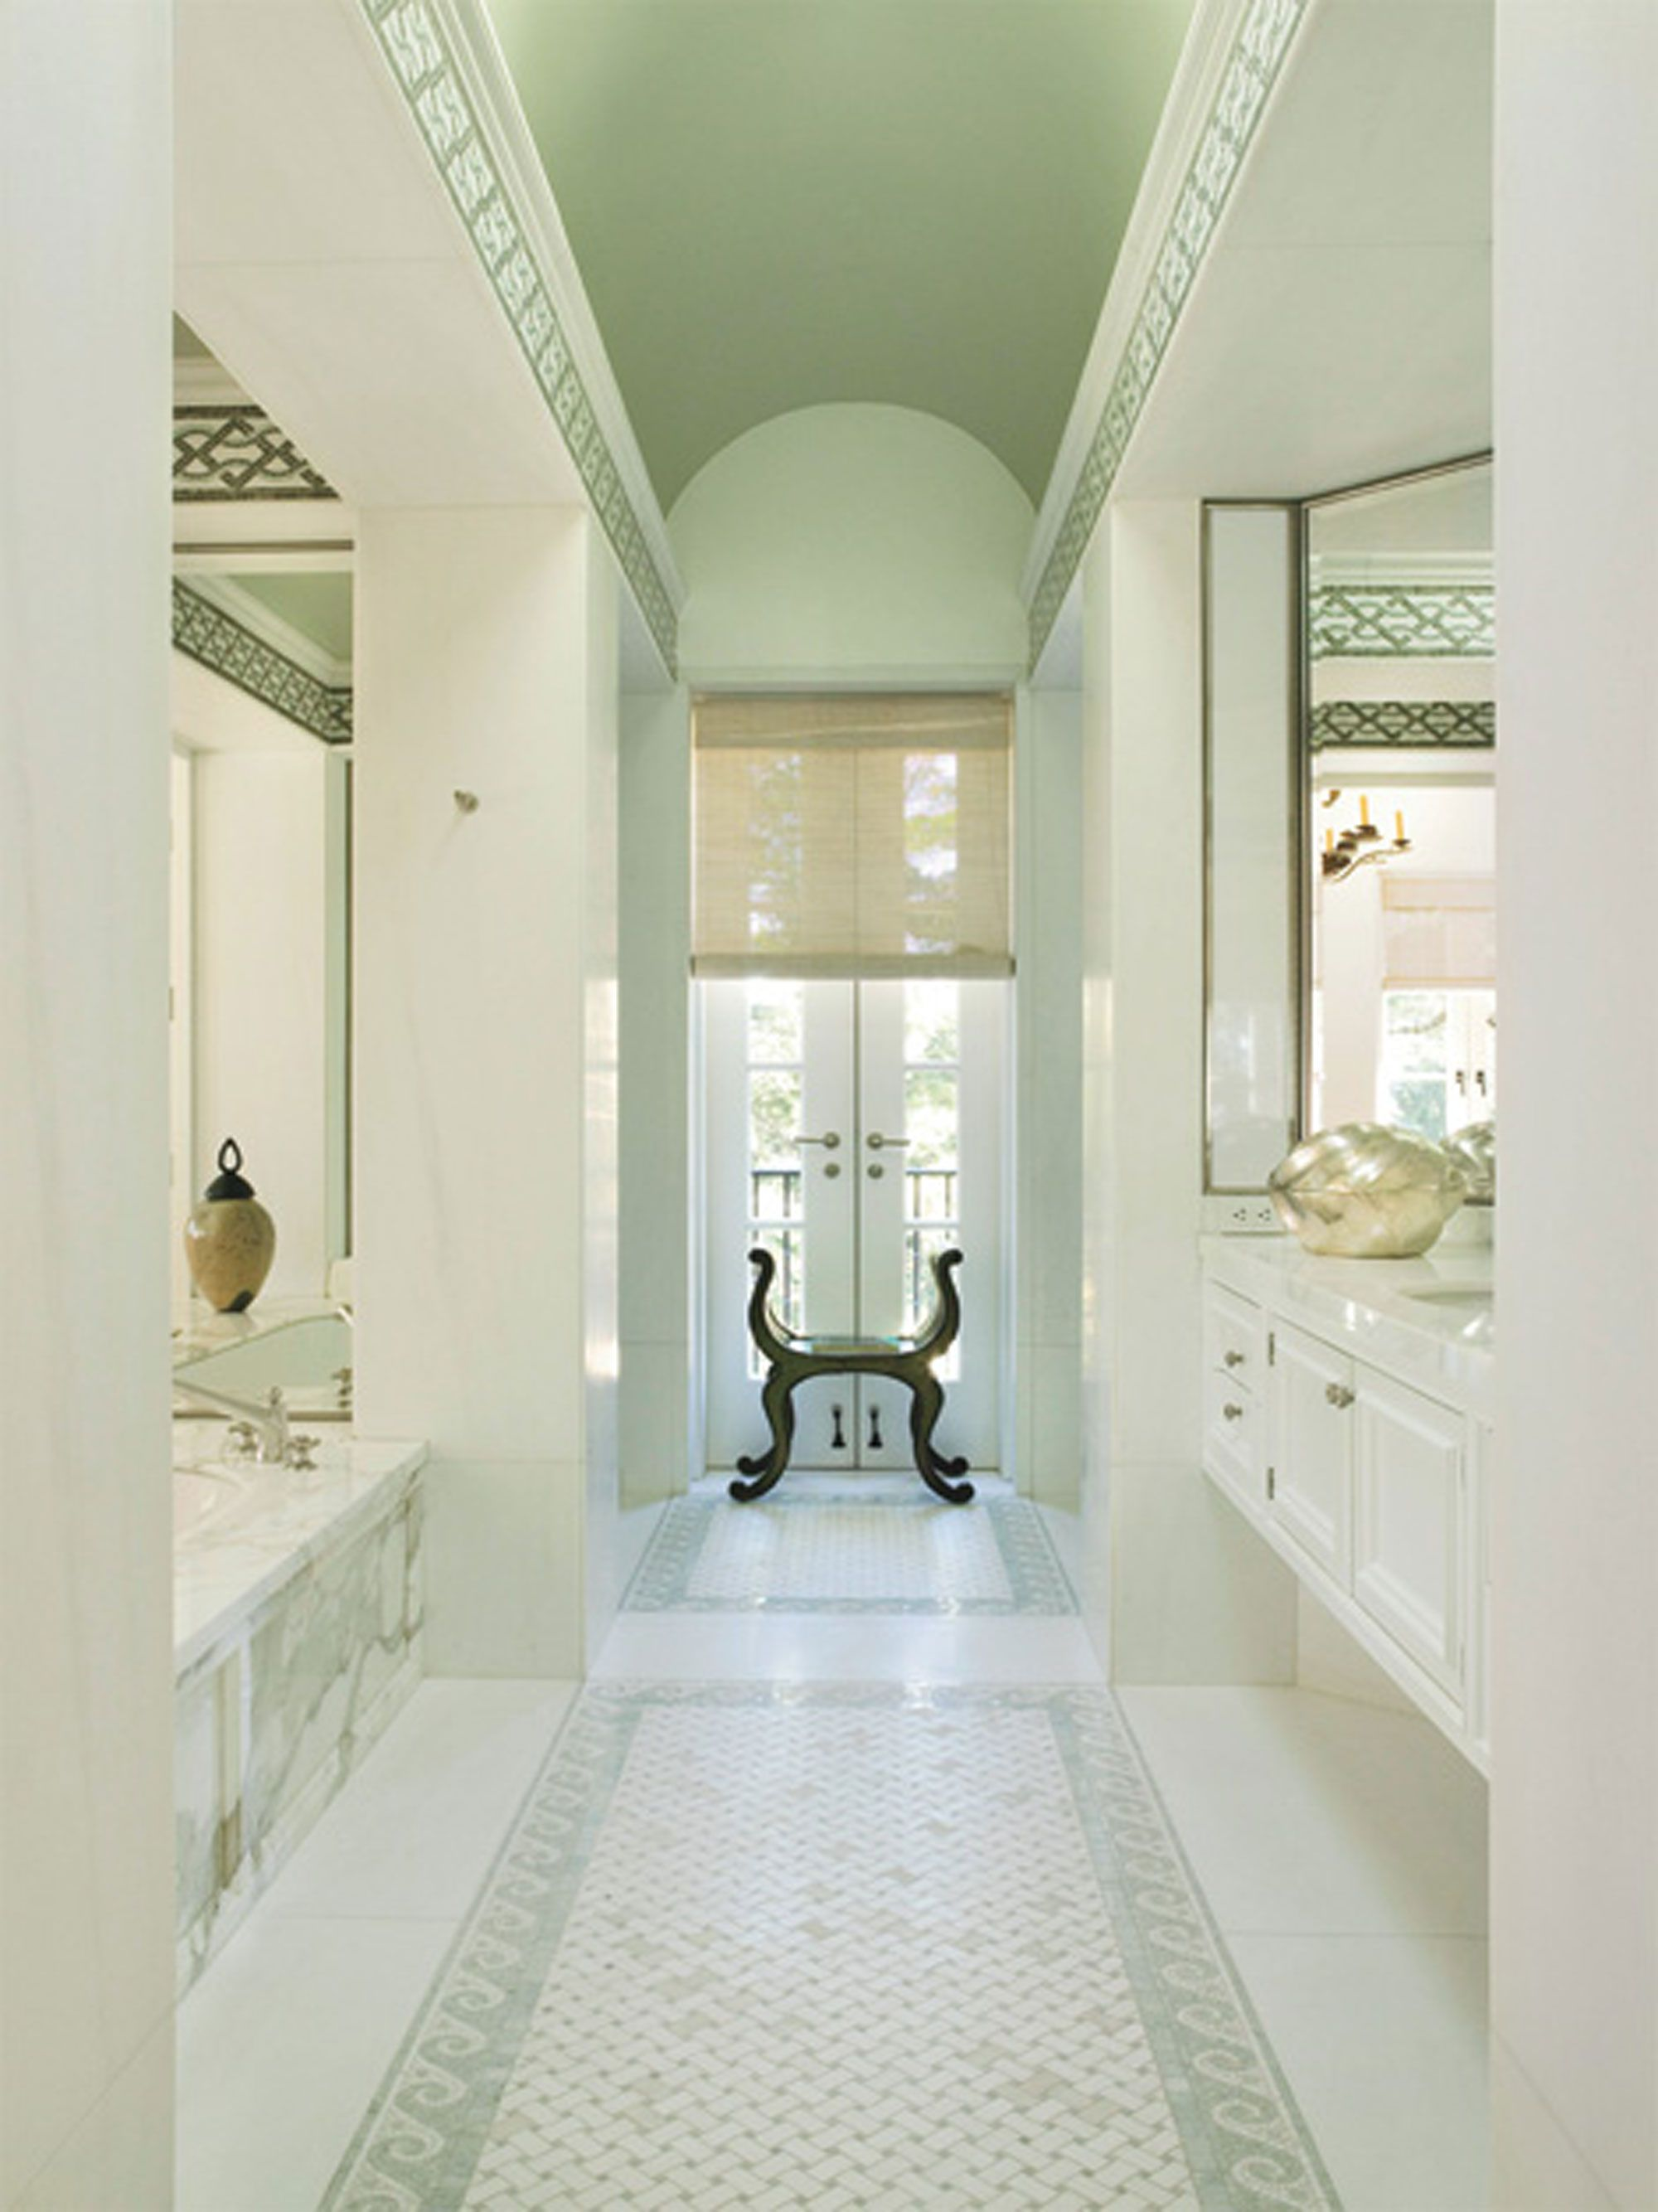 Image result for orlando diaz azcuy interior design | Architectural ...